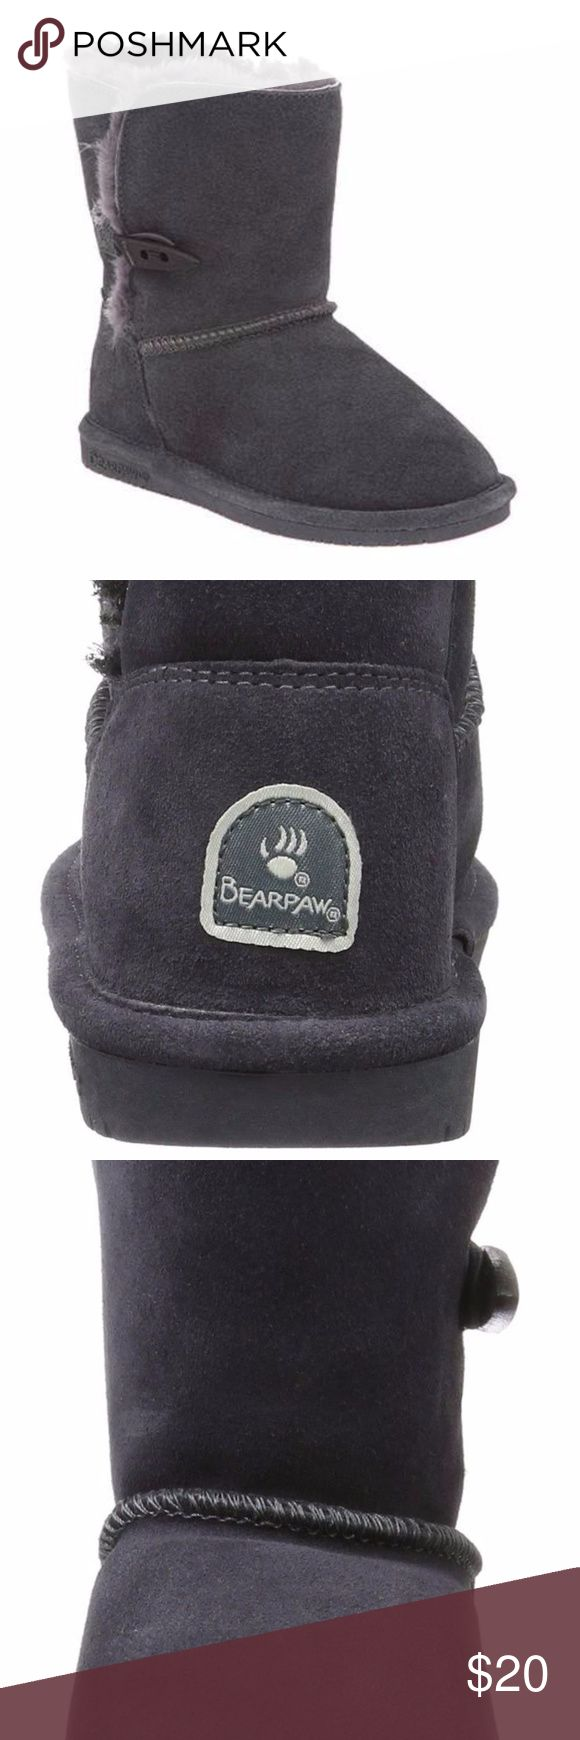 ❄️BearPaw Boots New W/O the tags. Soft and fuzzy on the inside. These have never been worn. Offers welcome but no trades. BearPaw Shoes Winter & Rain Boots